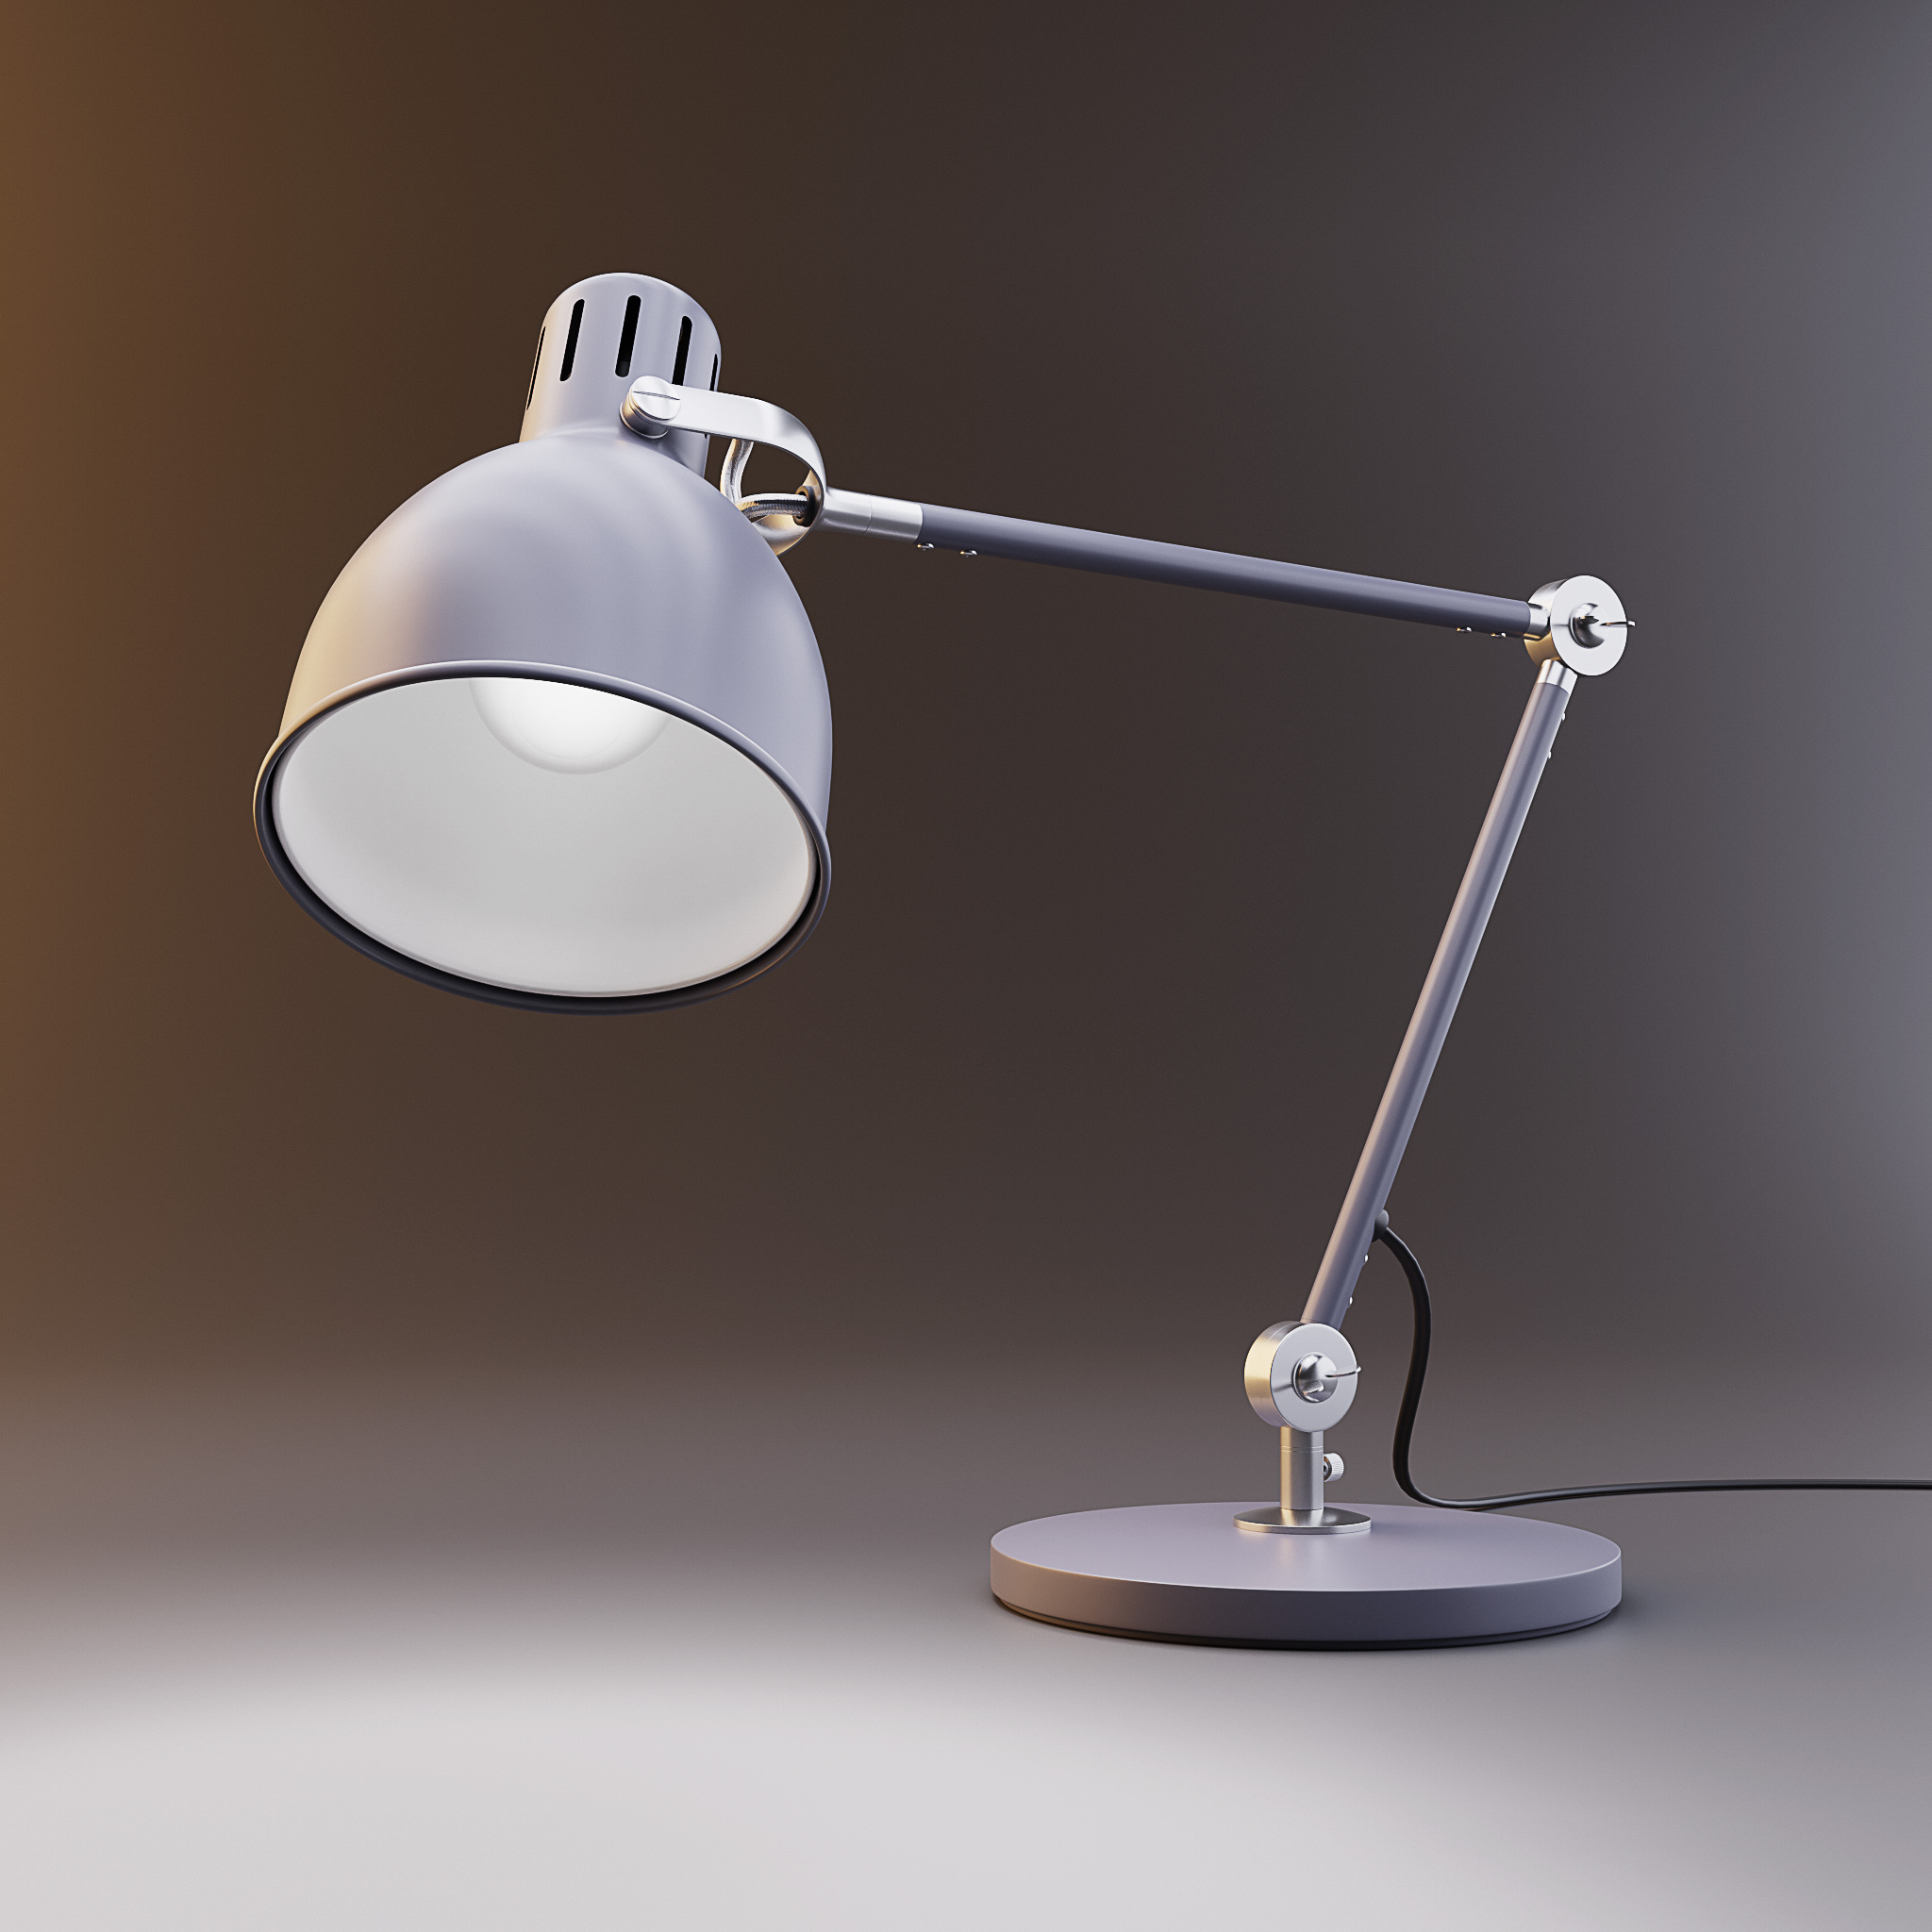 Small Lamp preview image 1